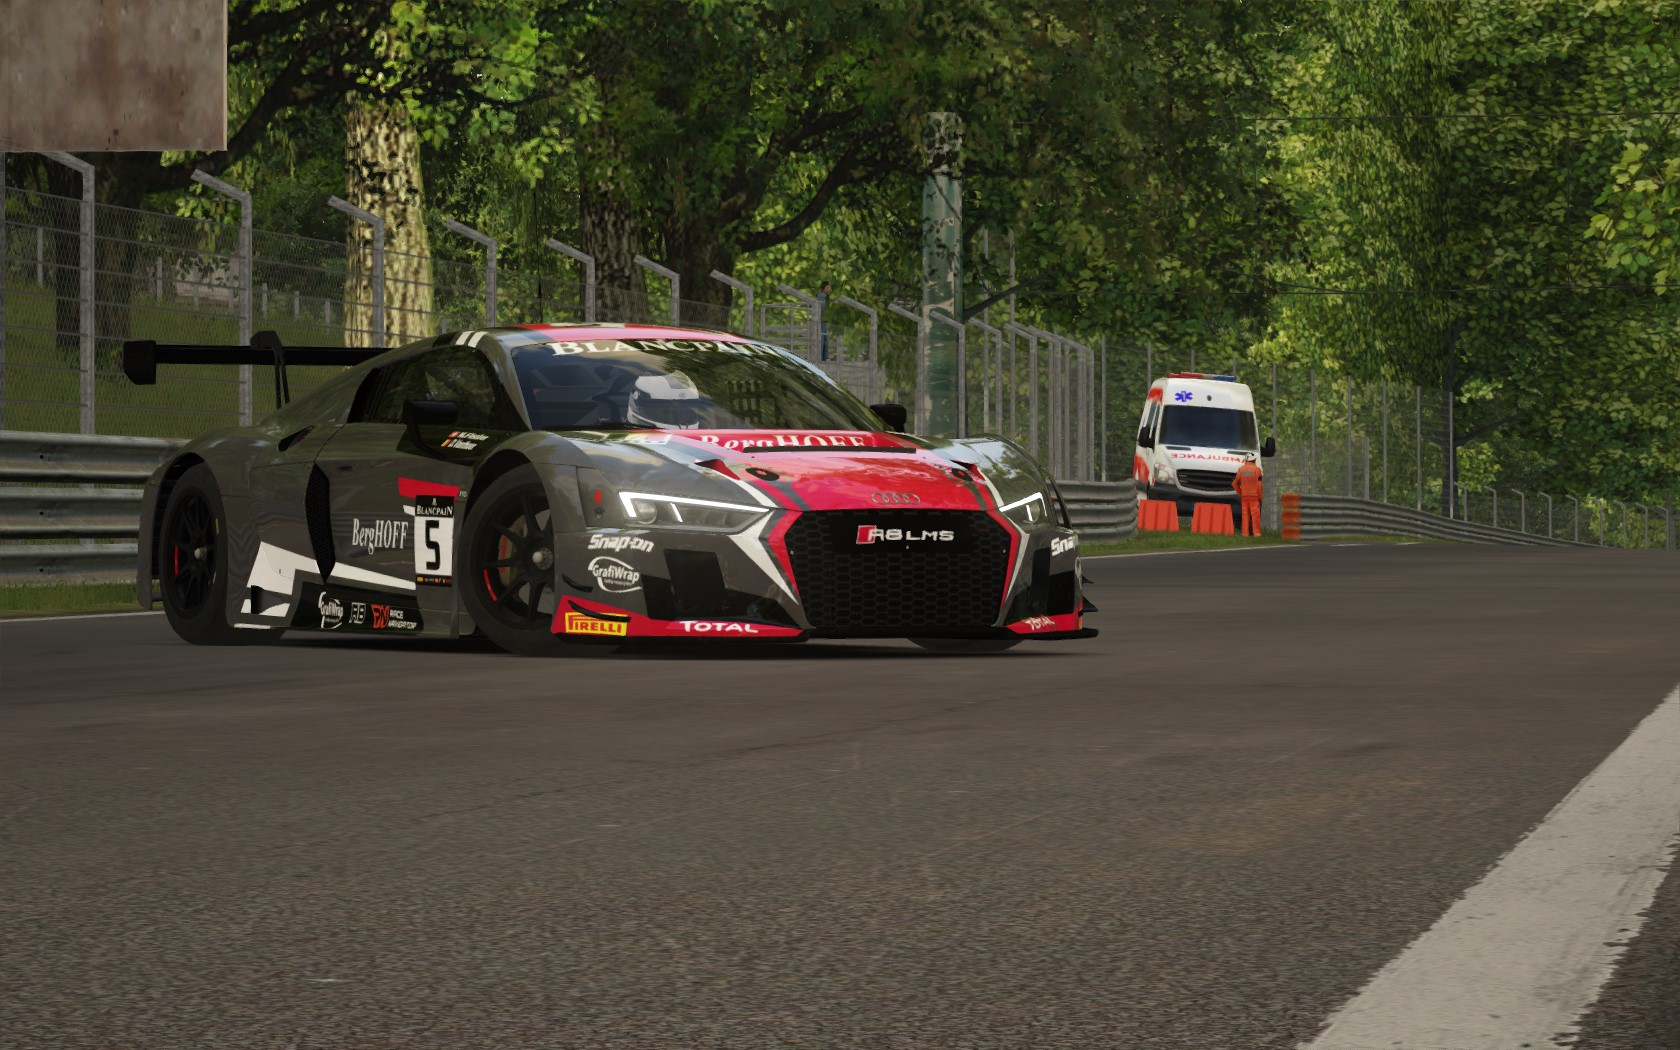 Screenshot_ks_audi_r8_lms_2016_monza_21-5-117-18-25-6.jpg